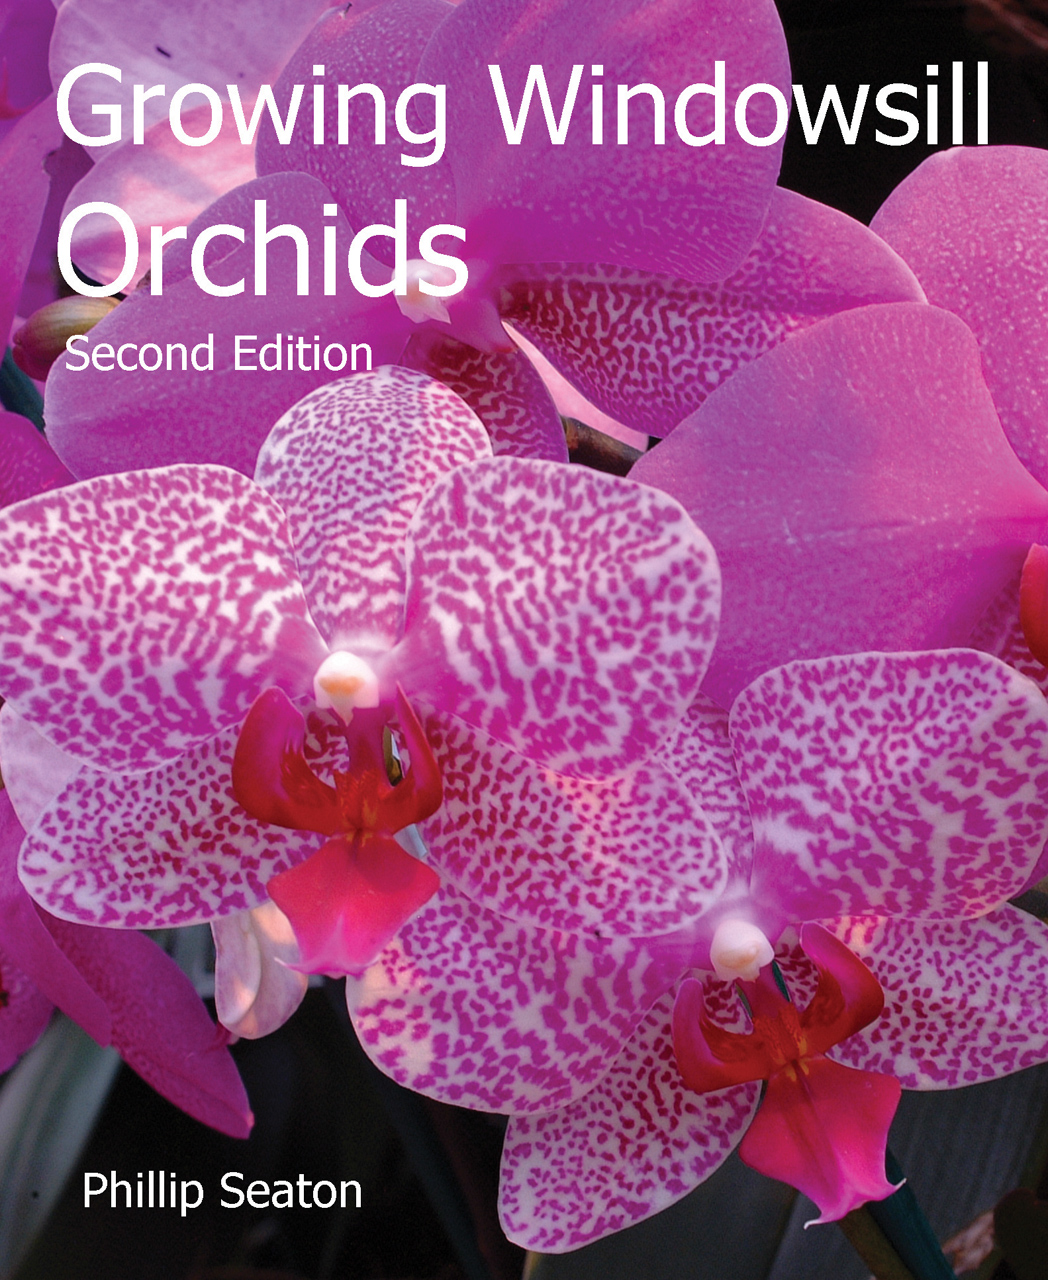 Growing Windowsill Orchids: Second Edition